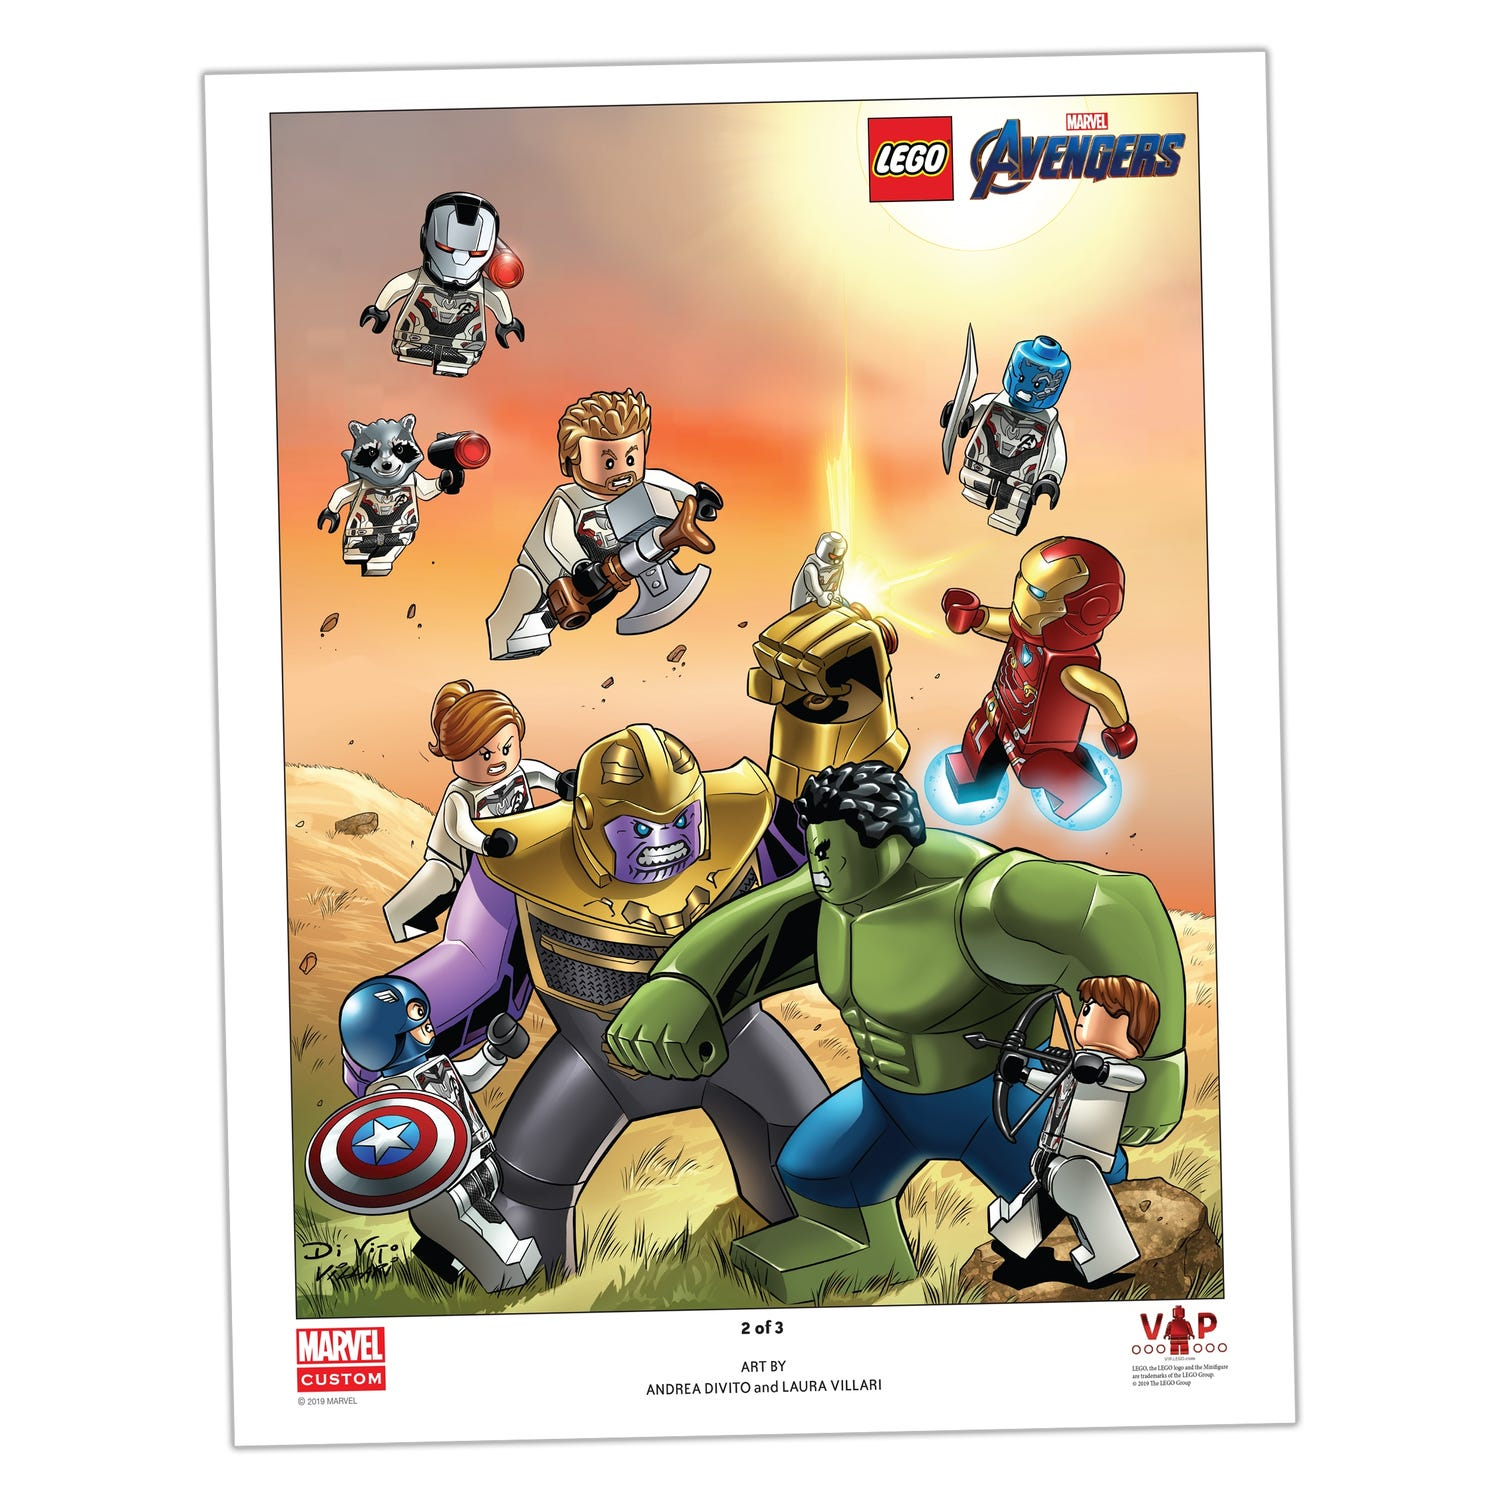 Lego Avengers Endgame Art Print 2 Of 3 5005881 Unknown